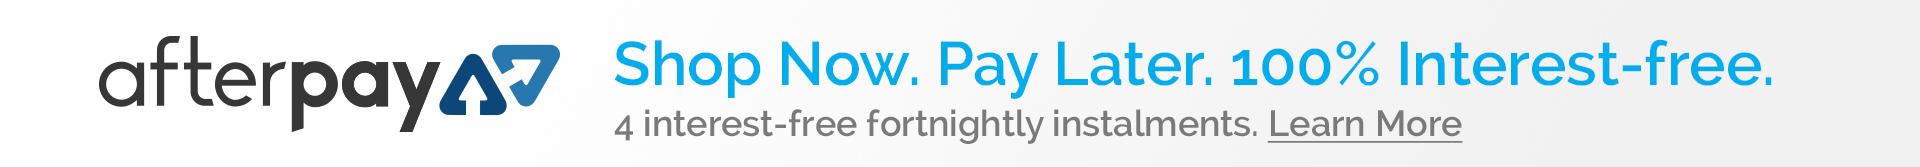 4 interest-free payments fortnightly